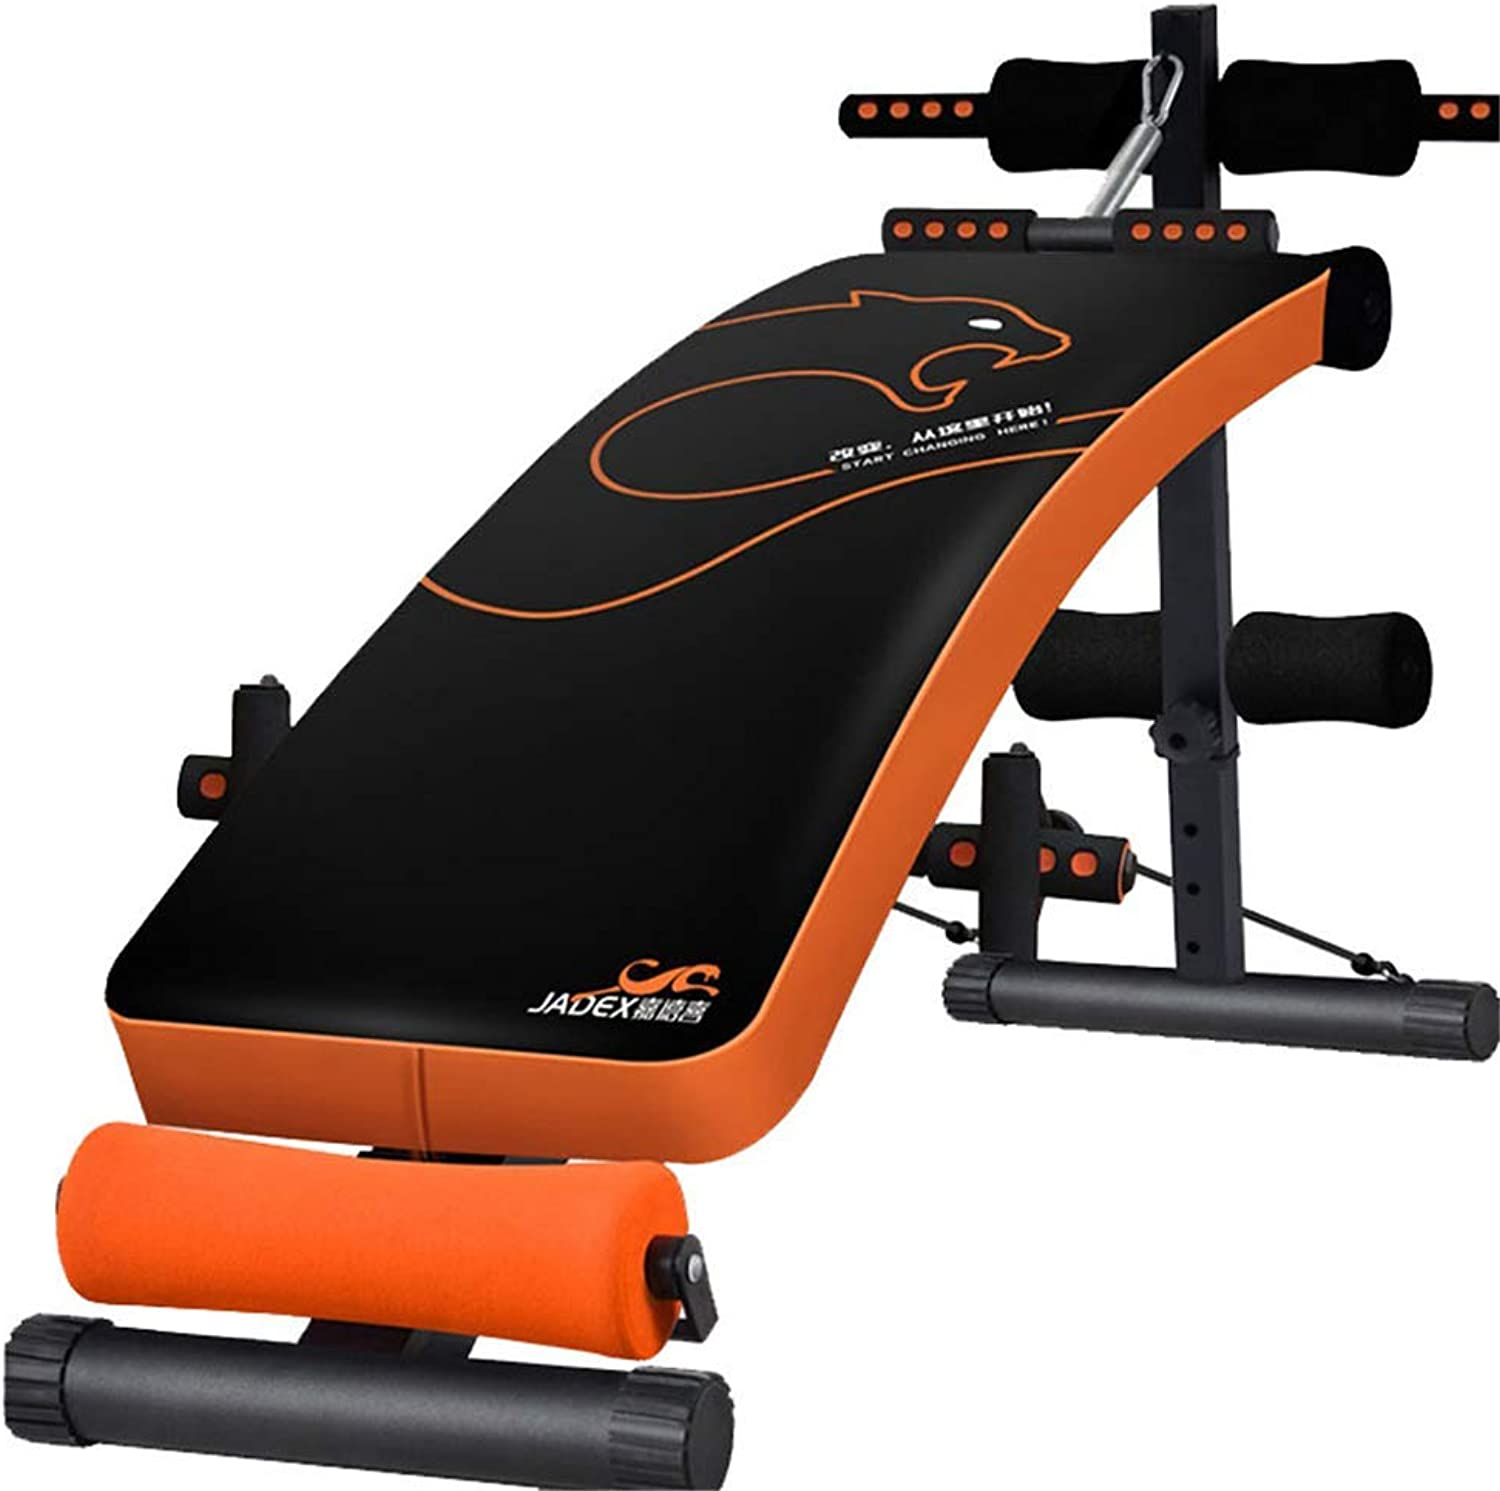 Adjustable Weight Bench Sit Up Bench Foldable Multipurpose Abdominal Trainer with Beef Tendon Rope Spring Booster 5 Levels Height from Flat to Incline Decline orange